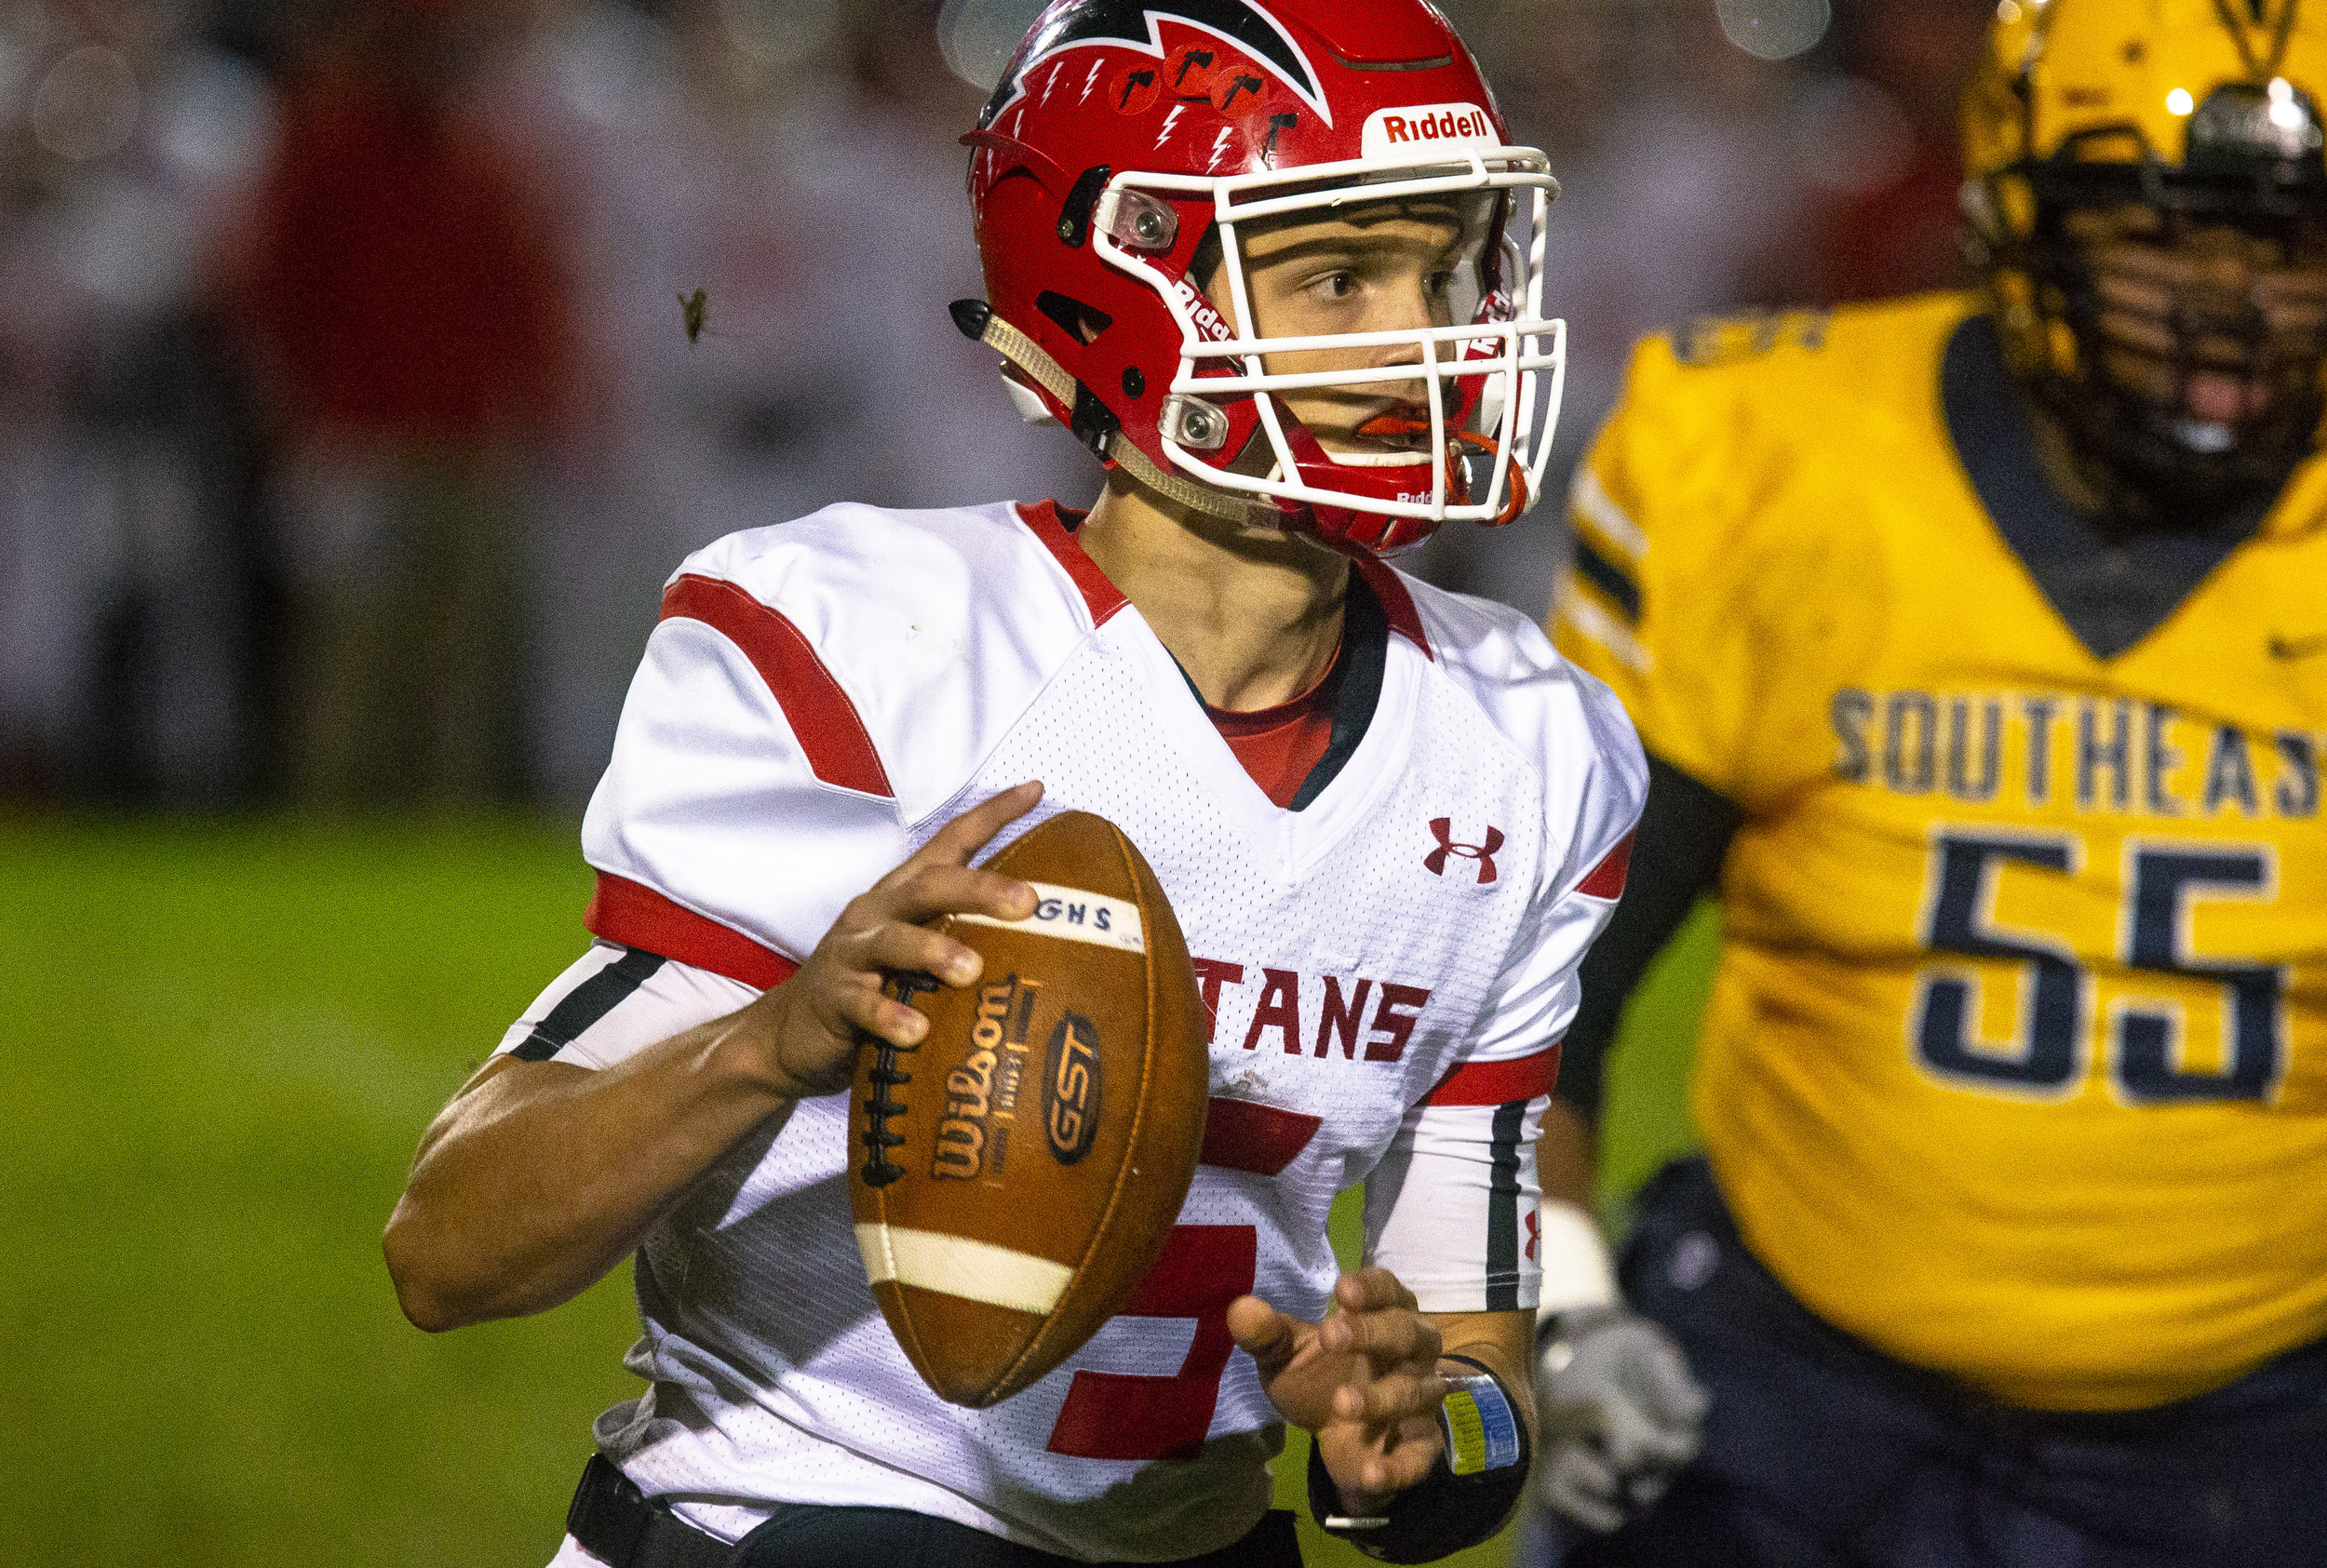 Glenwood quarterback Luke Lehnen looks for an open receiver Friday, Oct. 12, 2018 at Southeast High School's Spartan Field in Springfield, Ill. [Rich Saal/The State Journal-Register]